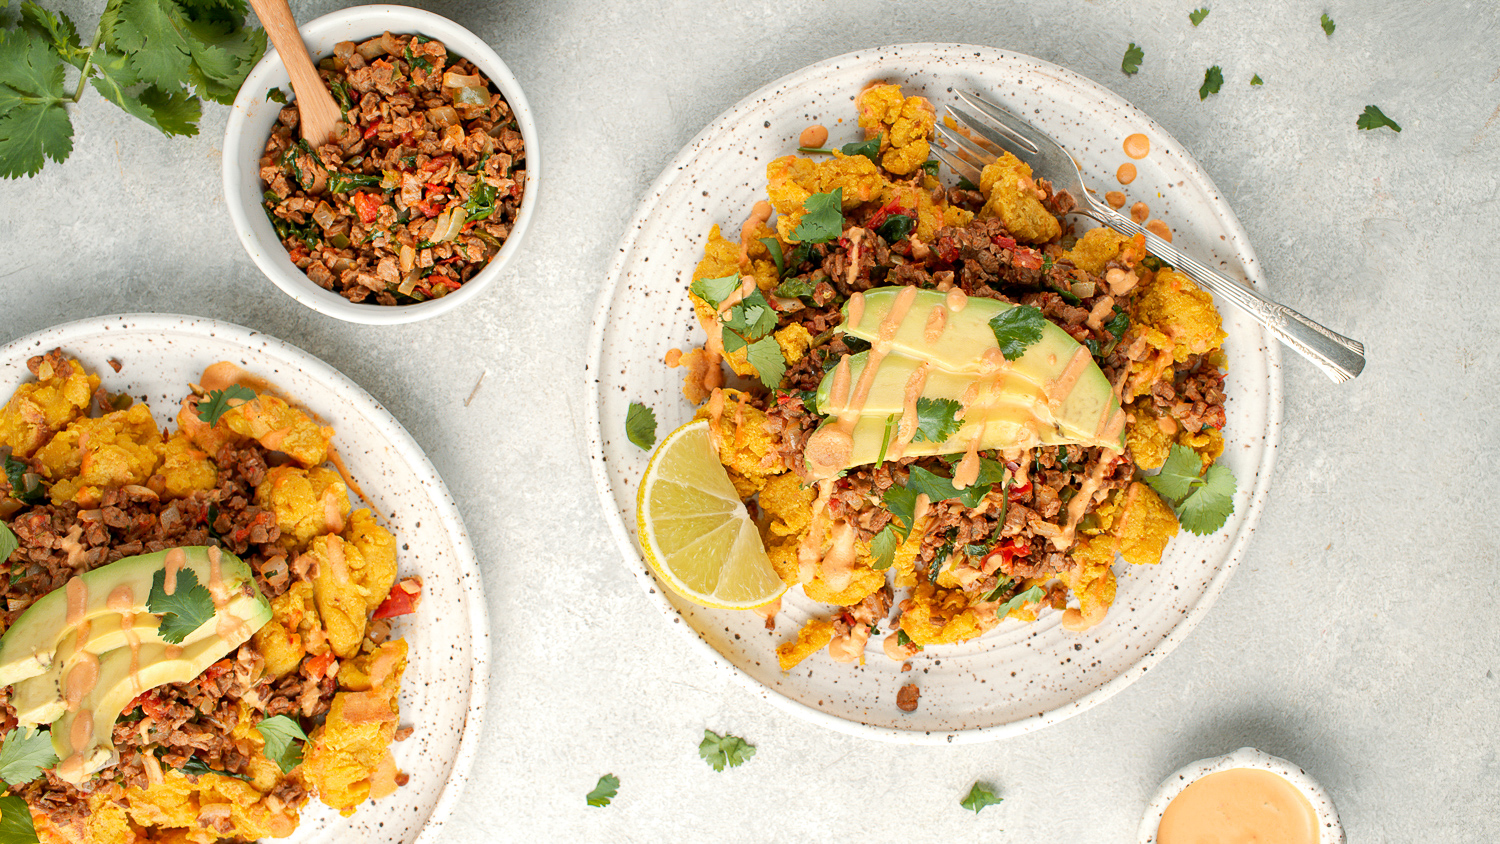 Chickpea Scramble With Vegan Taco Meat and Spicy Crema